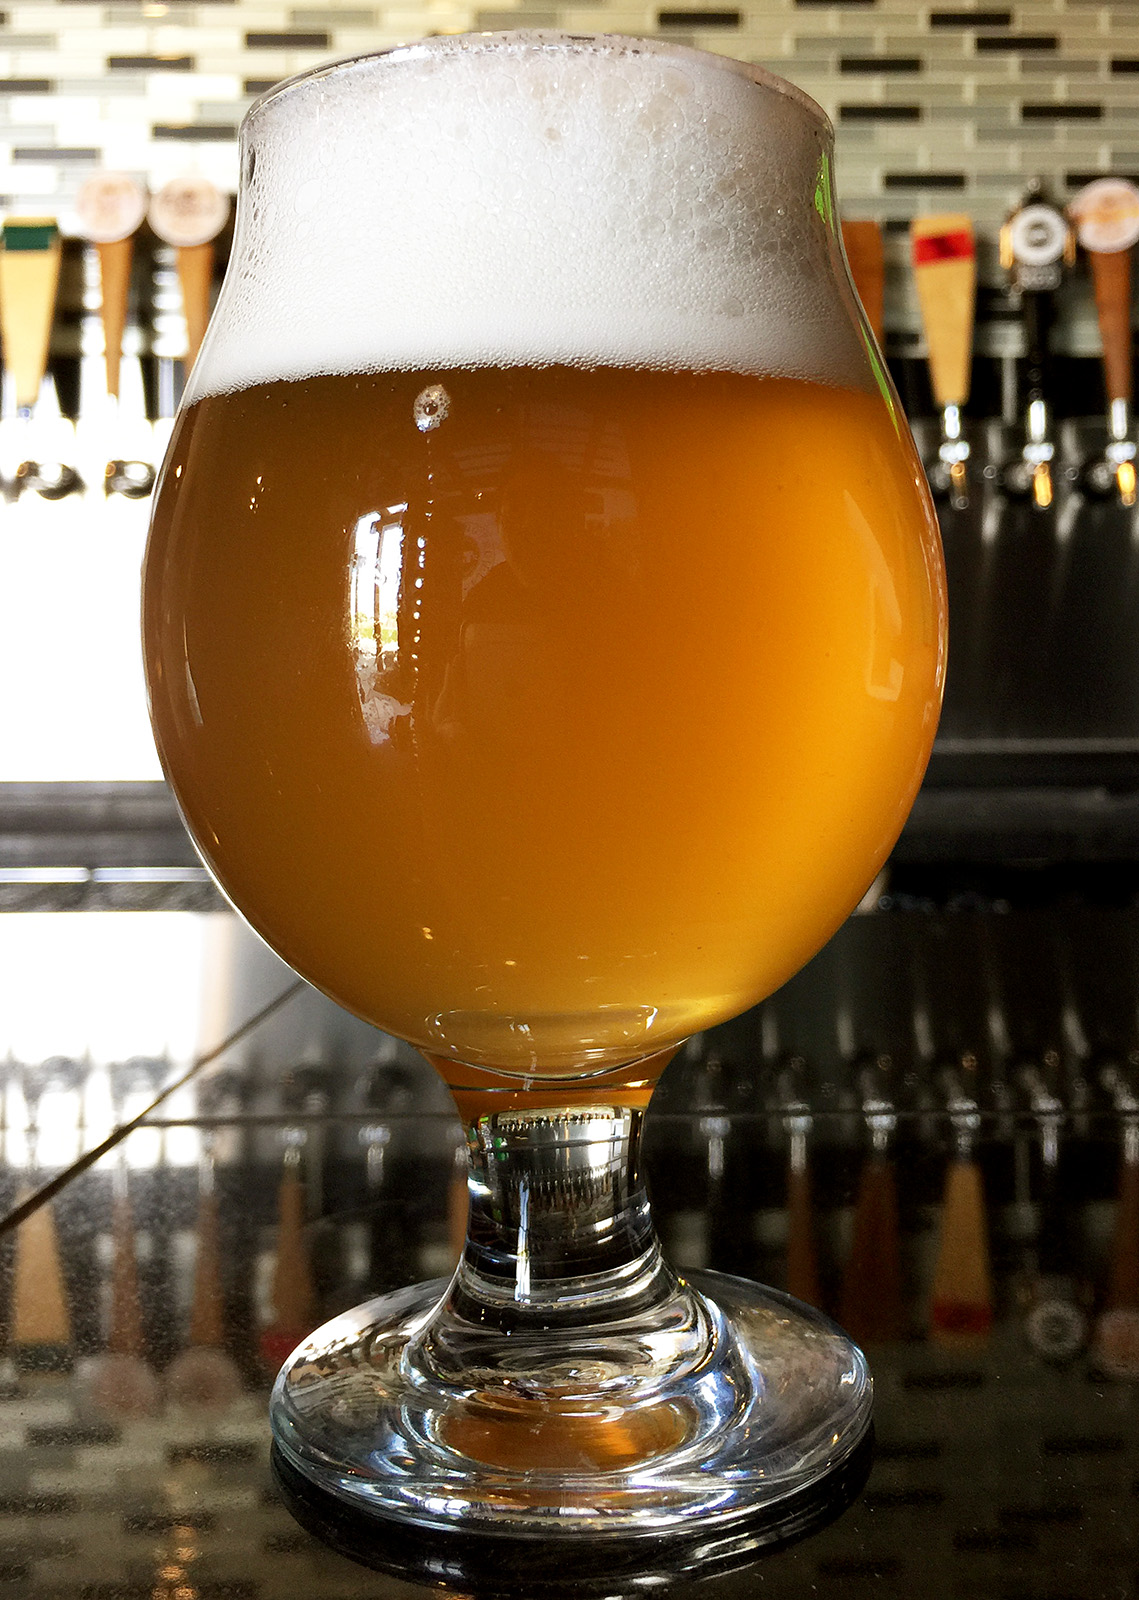 Wild in the Sacc, Pale Ale brewed with a wild yeast strain at the BCT Brewing Project.